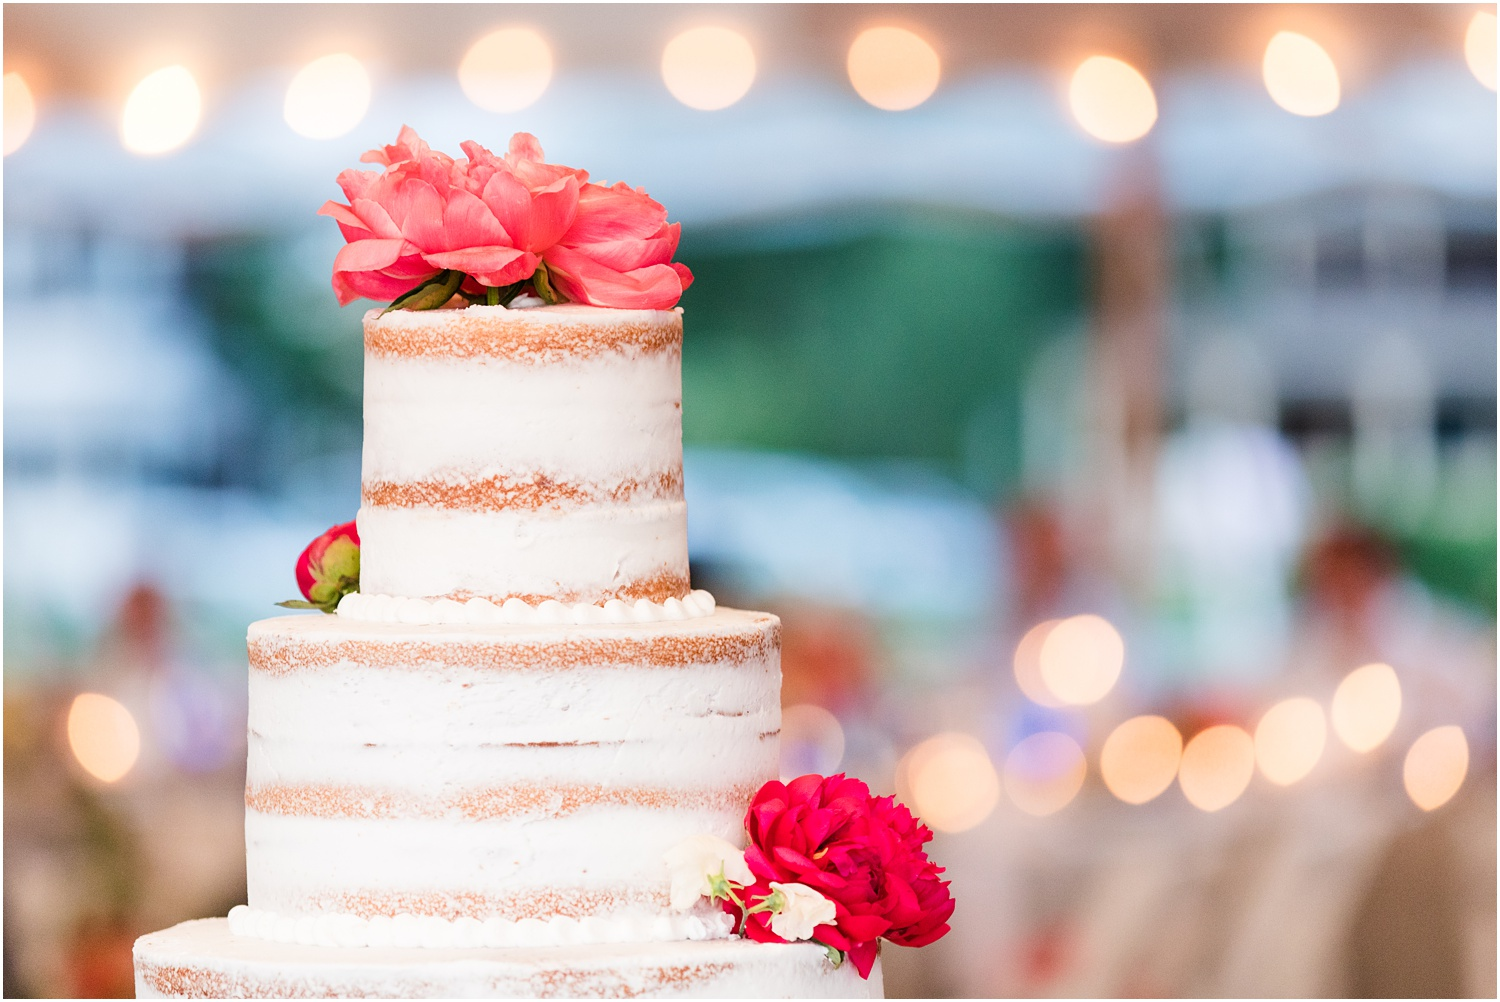 Naked wedding cake with pink florals by Faye and Renee.